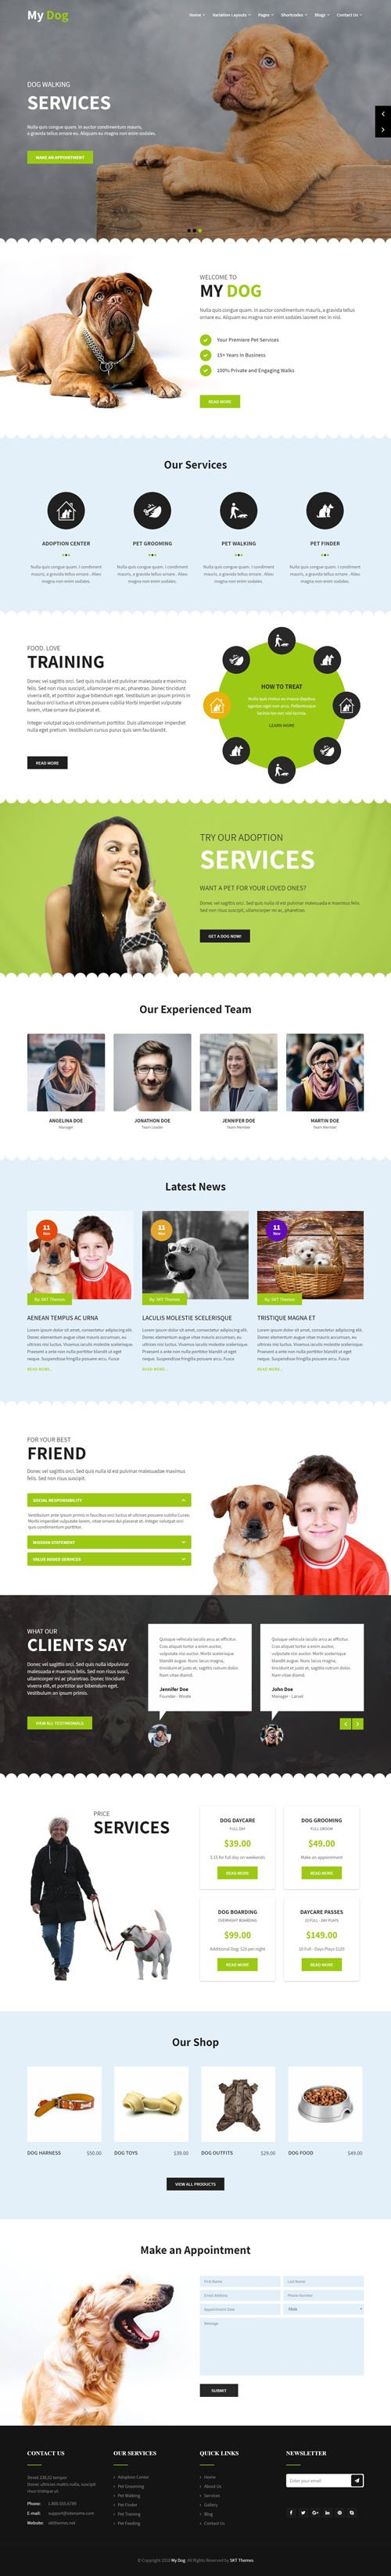 SKT Themes - My Dog v1.1 - WordPress Theme